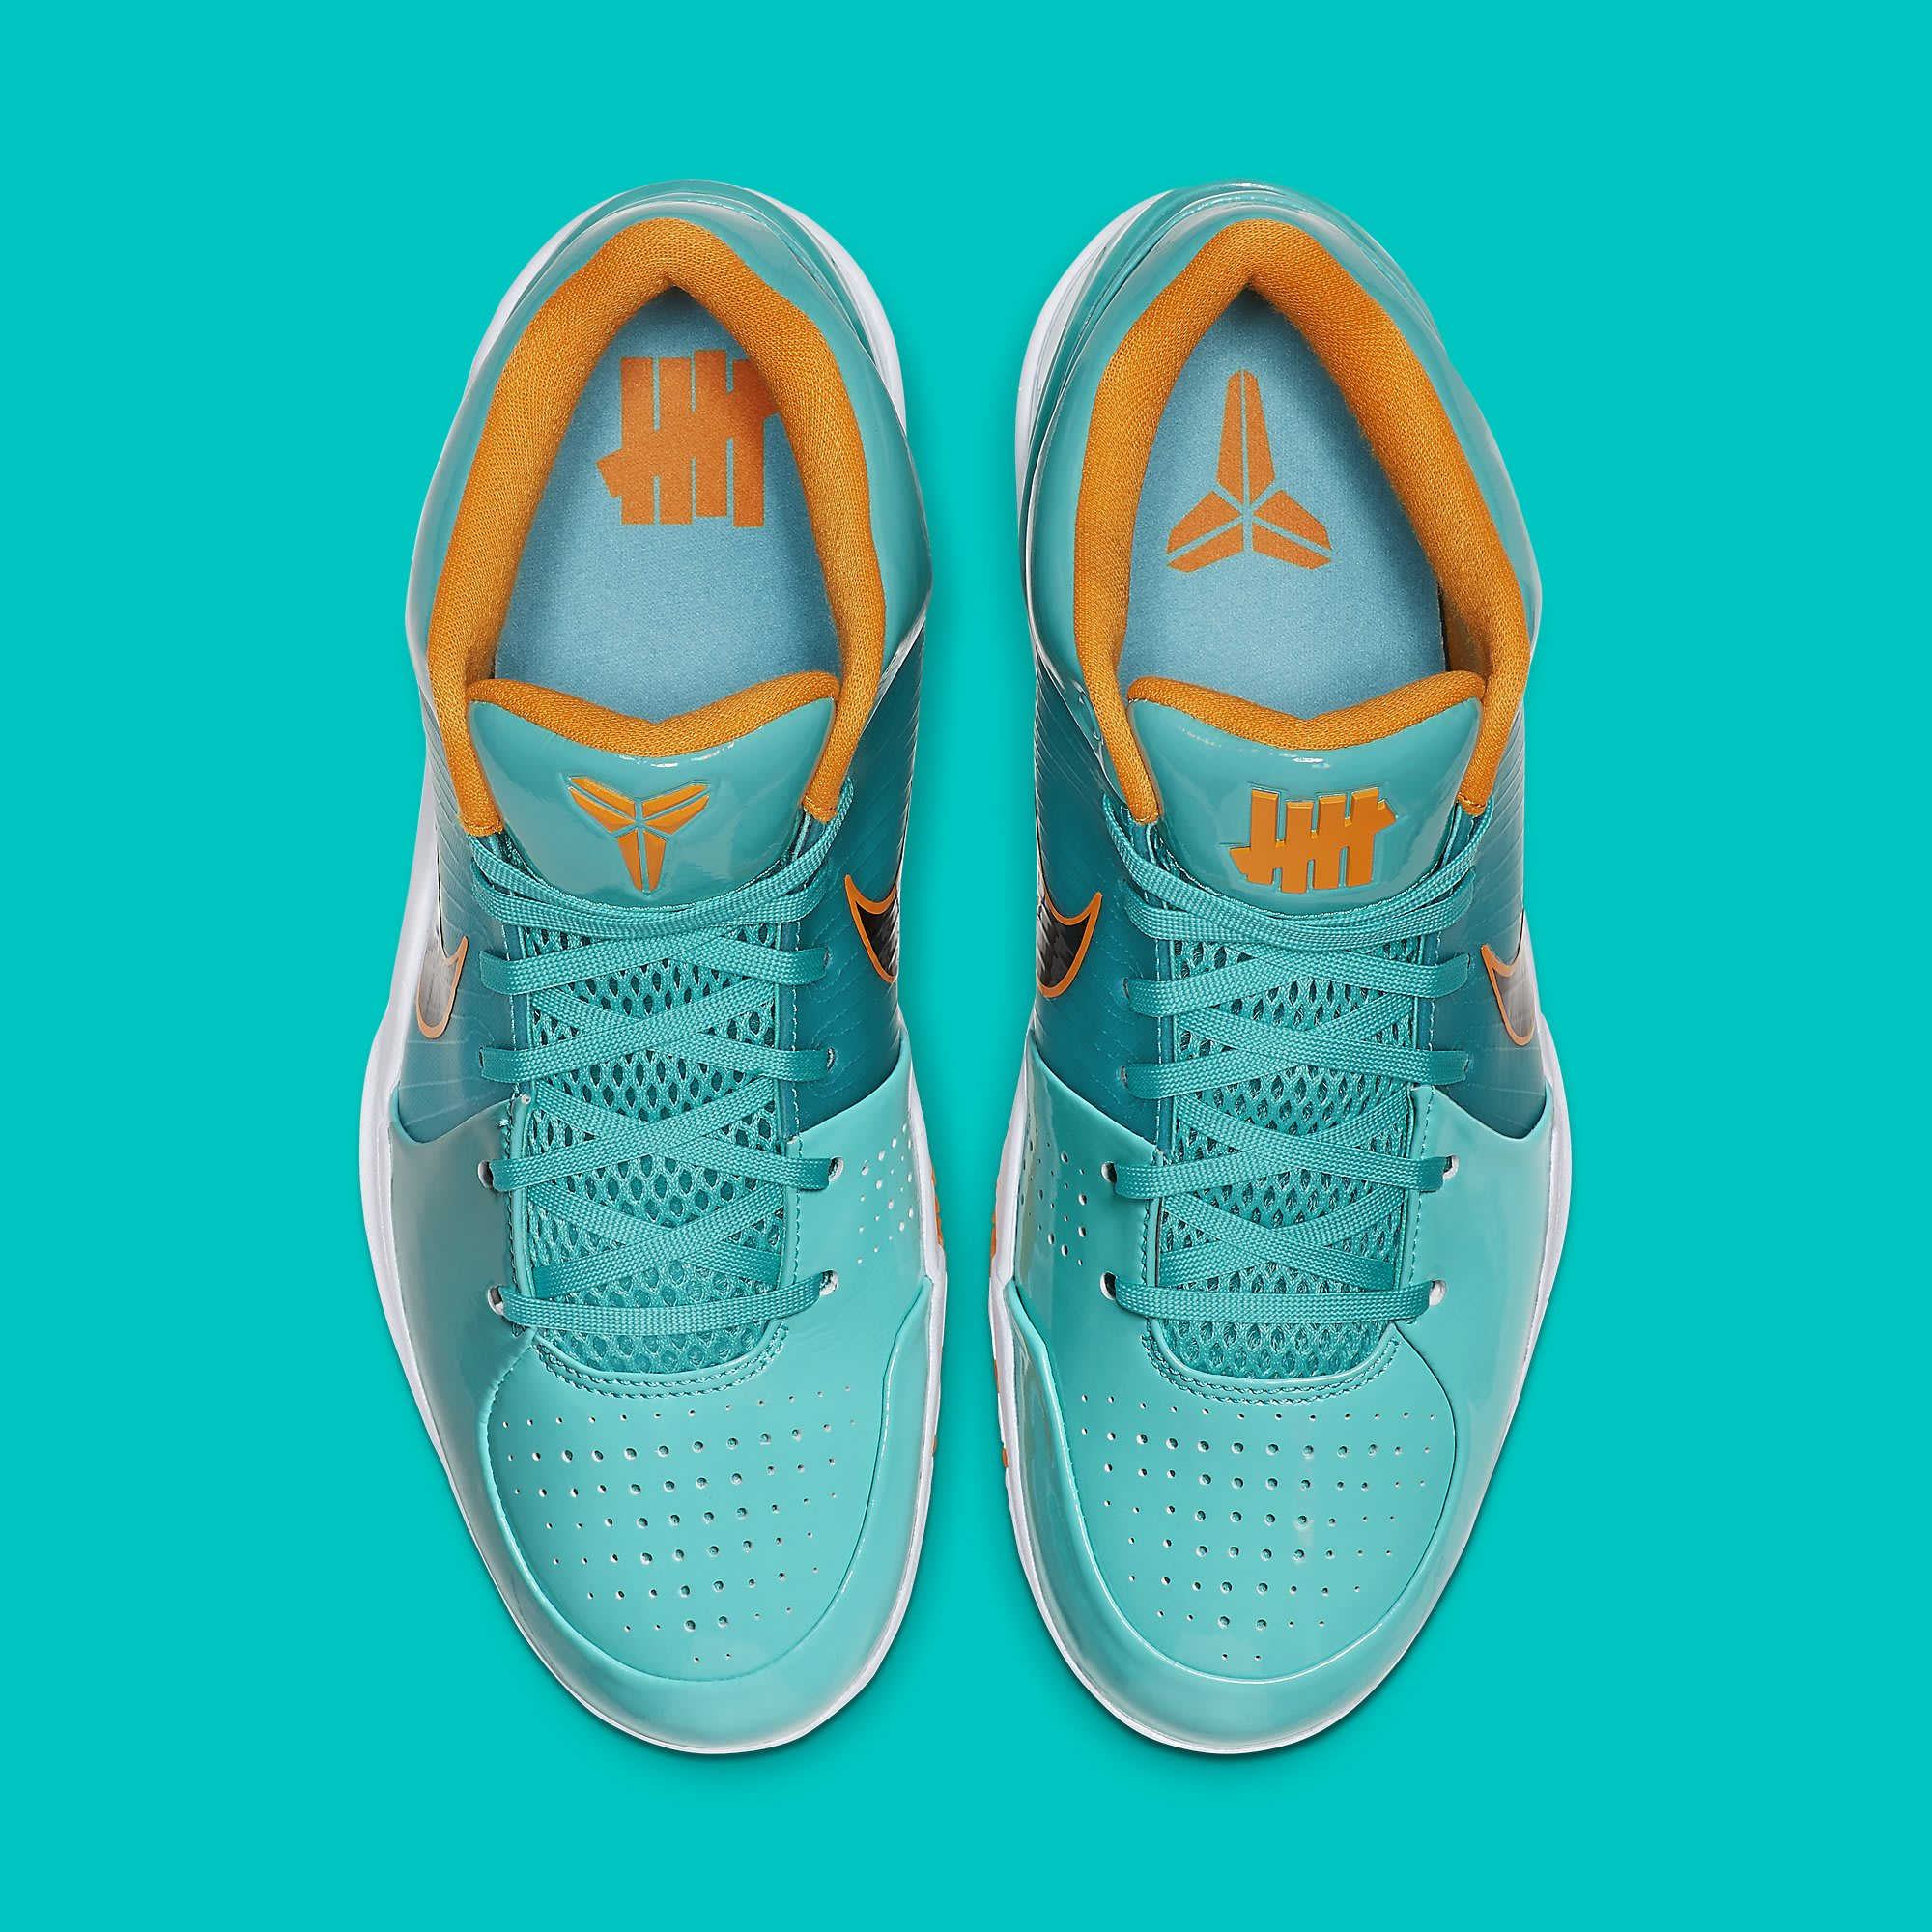 UNDFTD x Nike Kobe 4 Protro Teal Release Date CQ38869-300 Top